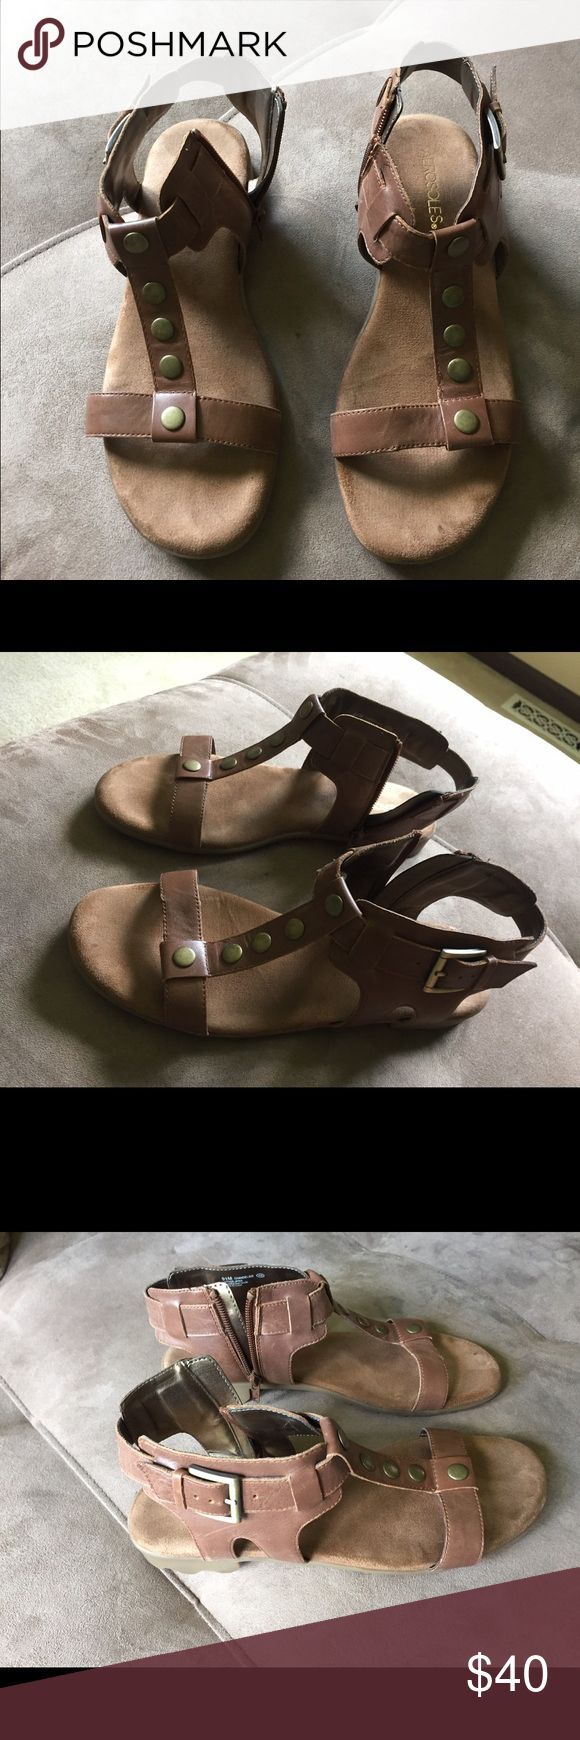 Light tan faux leather sandals Aerosoles Women's Gladiator Sandal. Used only a few times, great condition AEROSOLES Shoes Sandals